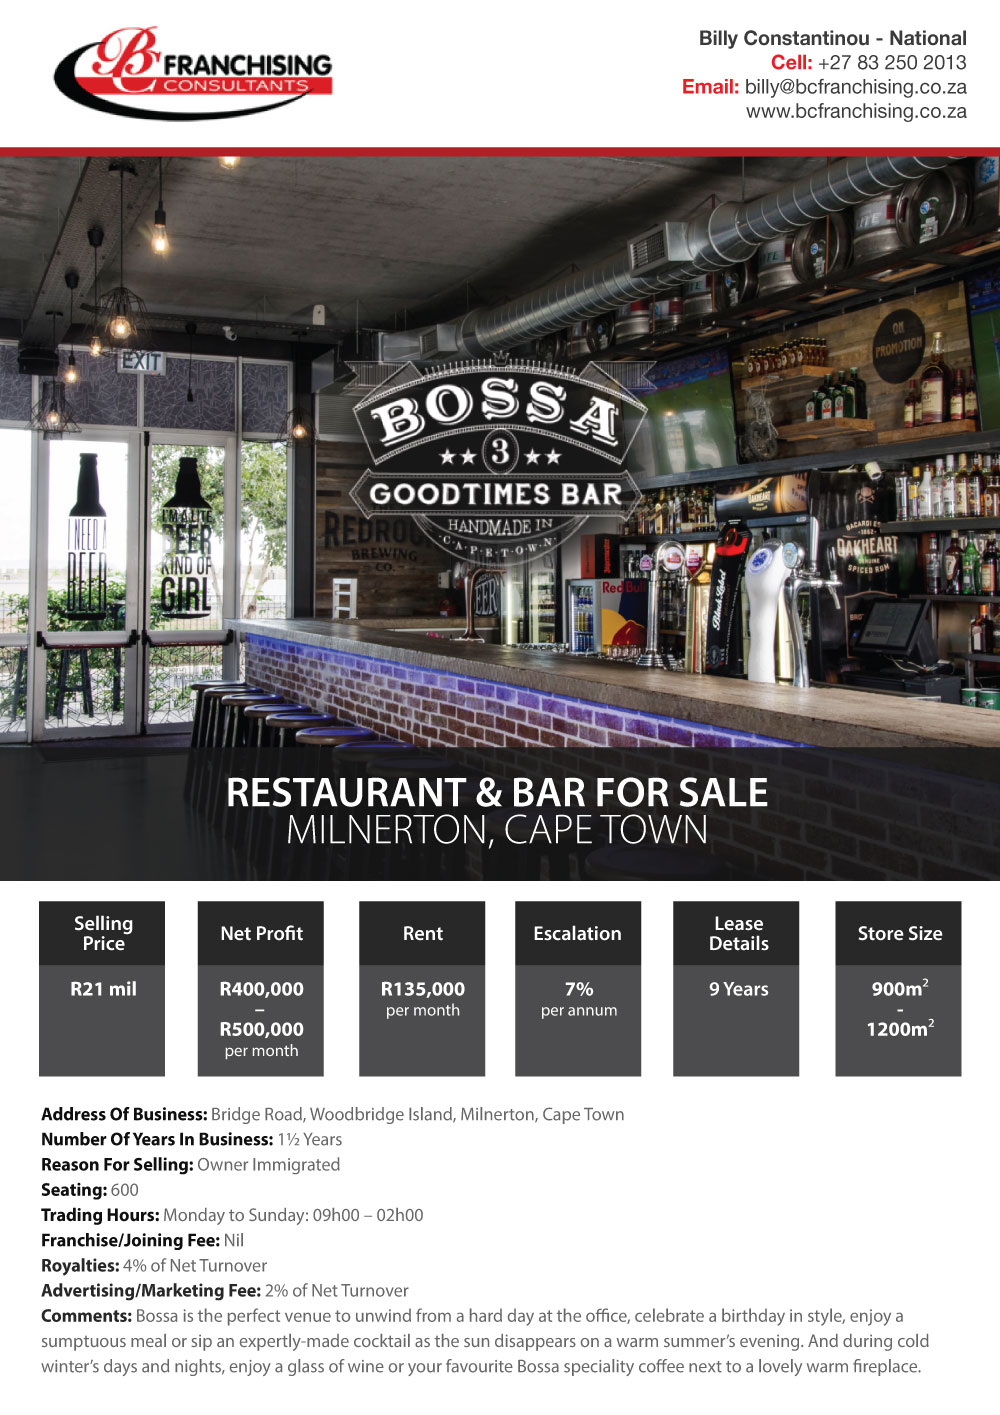 BOSSA GOODTIMES BAR MILNERTON - SOCIAL MEDIA AD